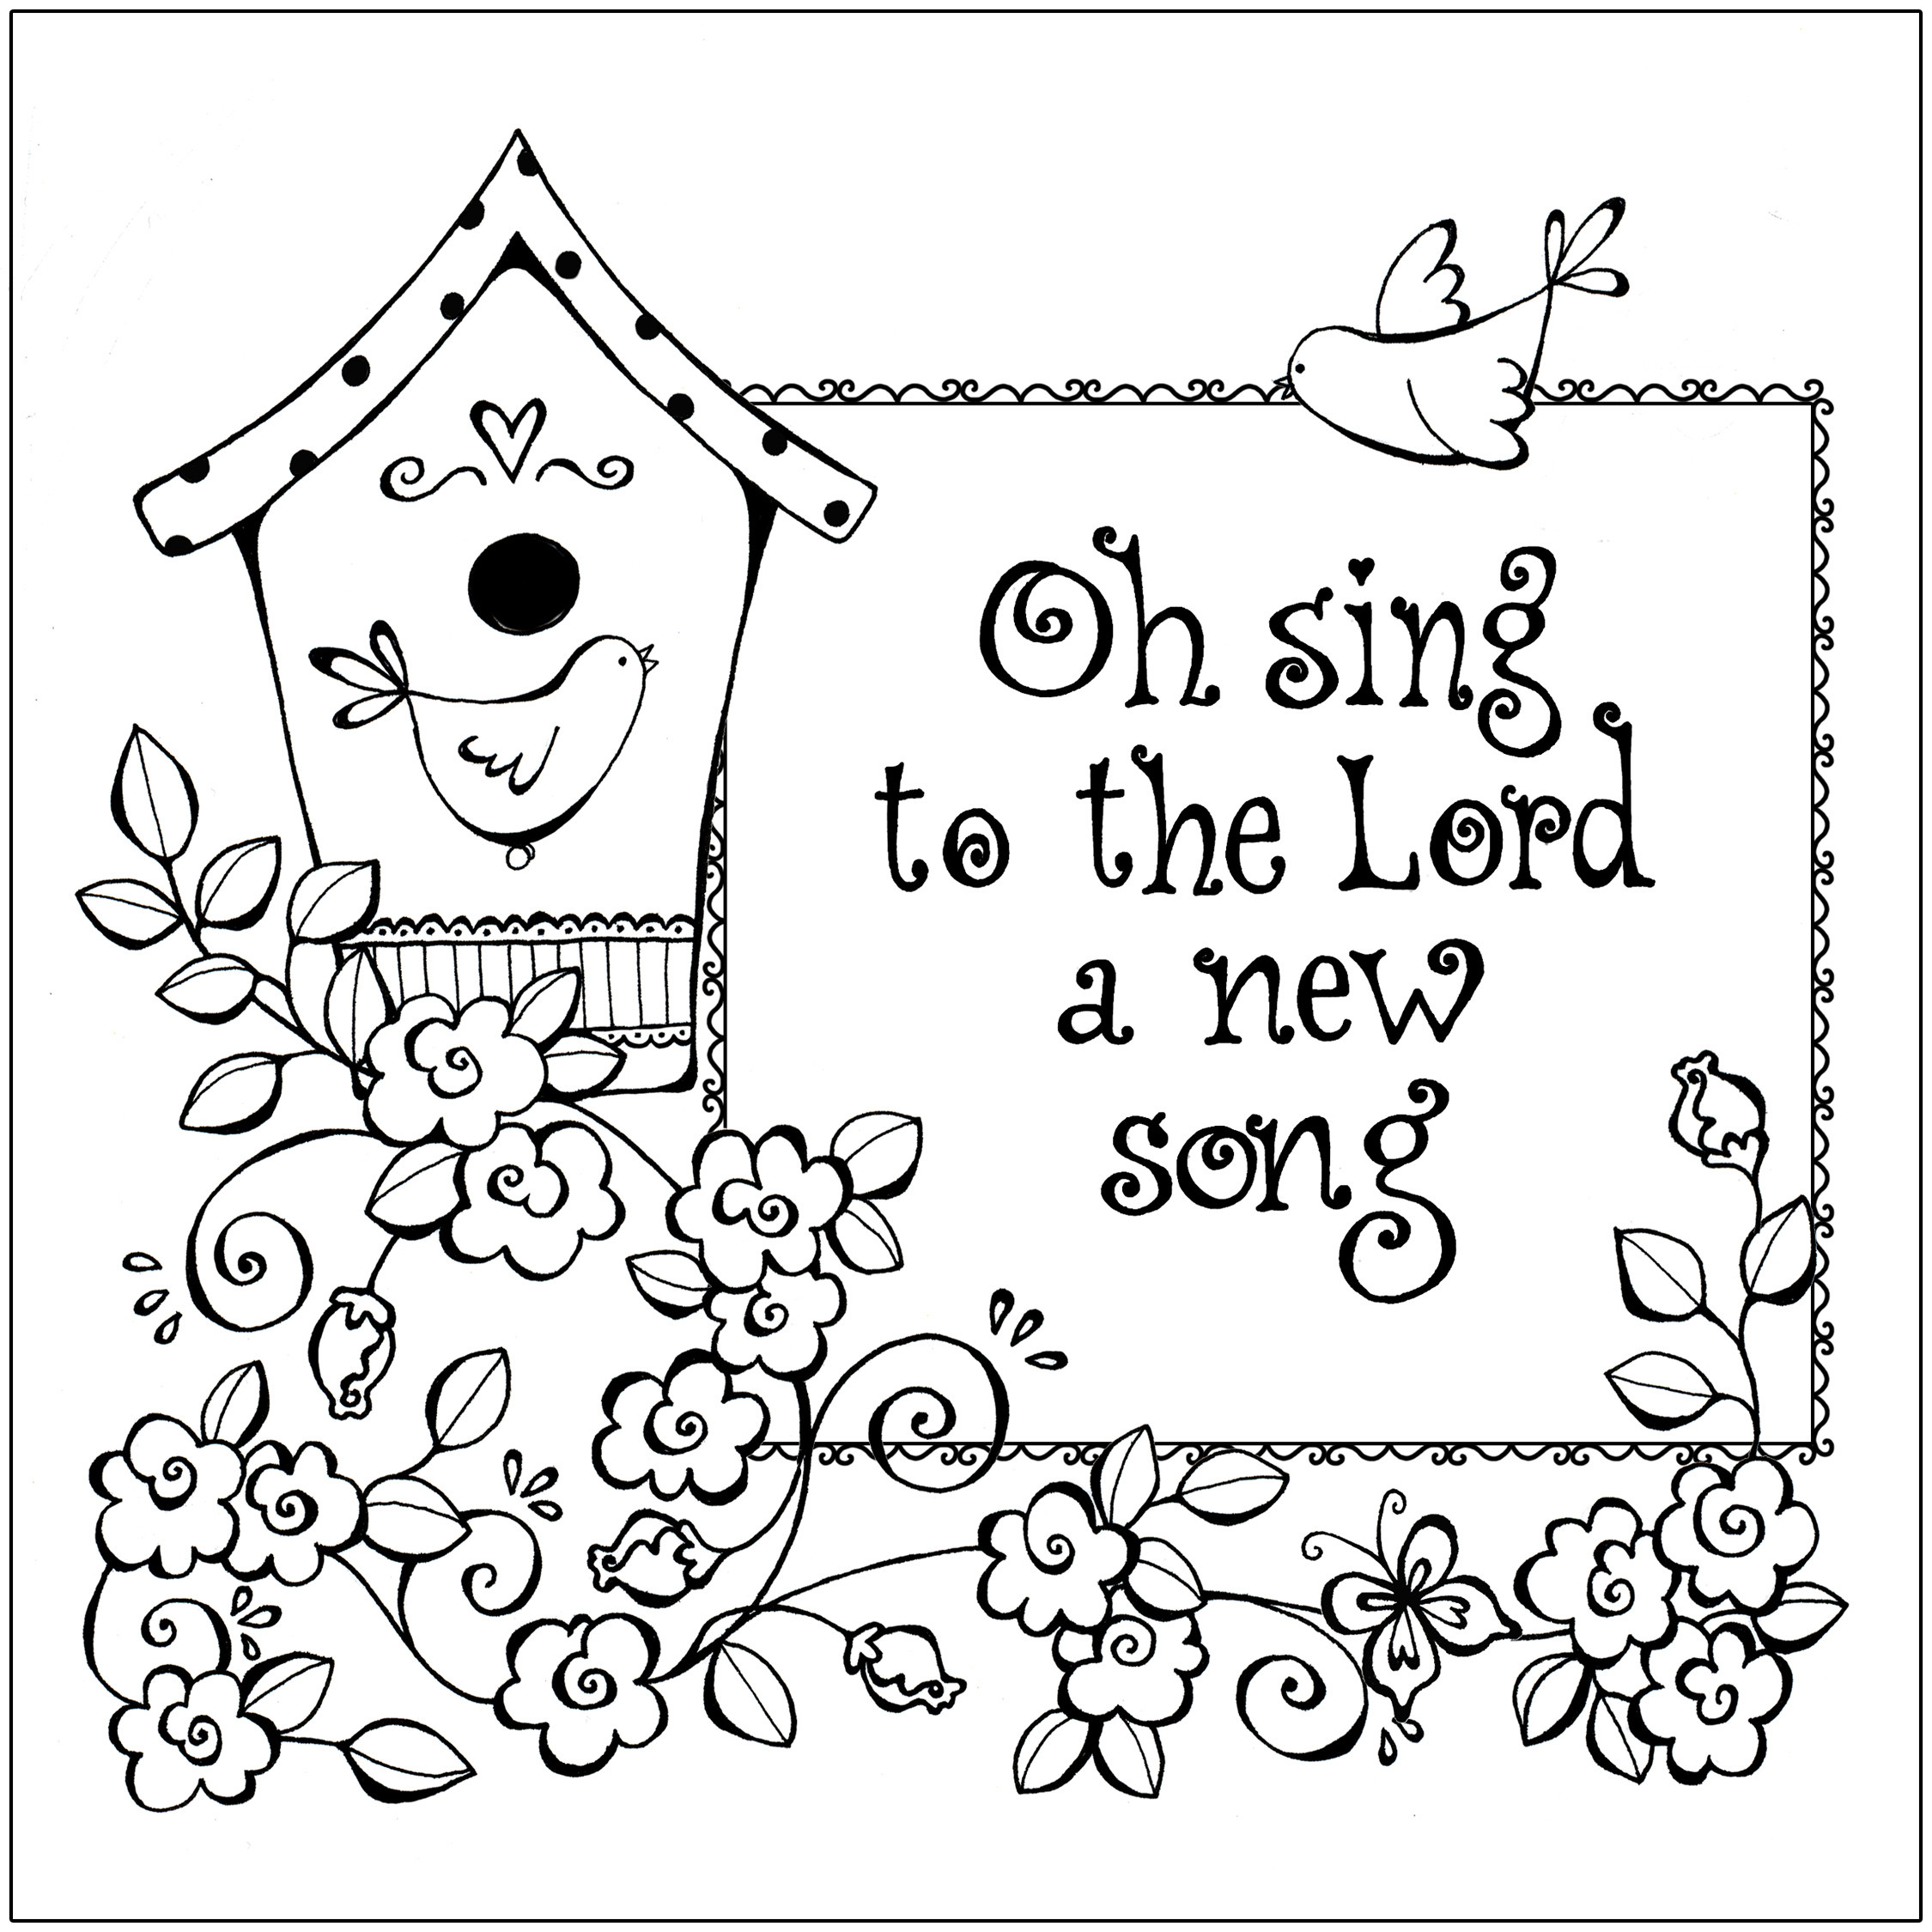 Best ideas about Christian Coloring Pages For Kids . Save or Pin Free Printable Christian Coloring Pages for Kids Best Now.